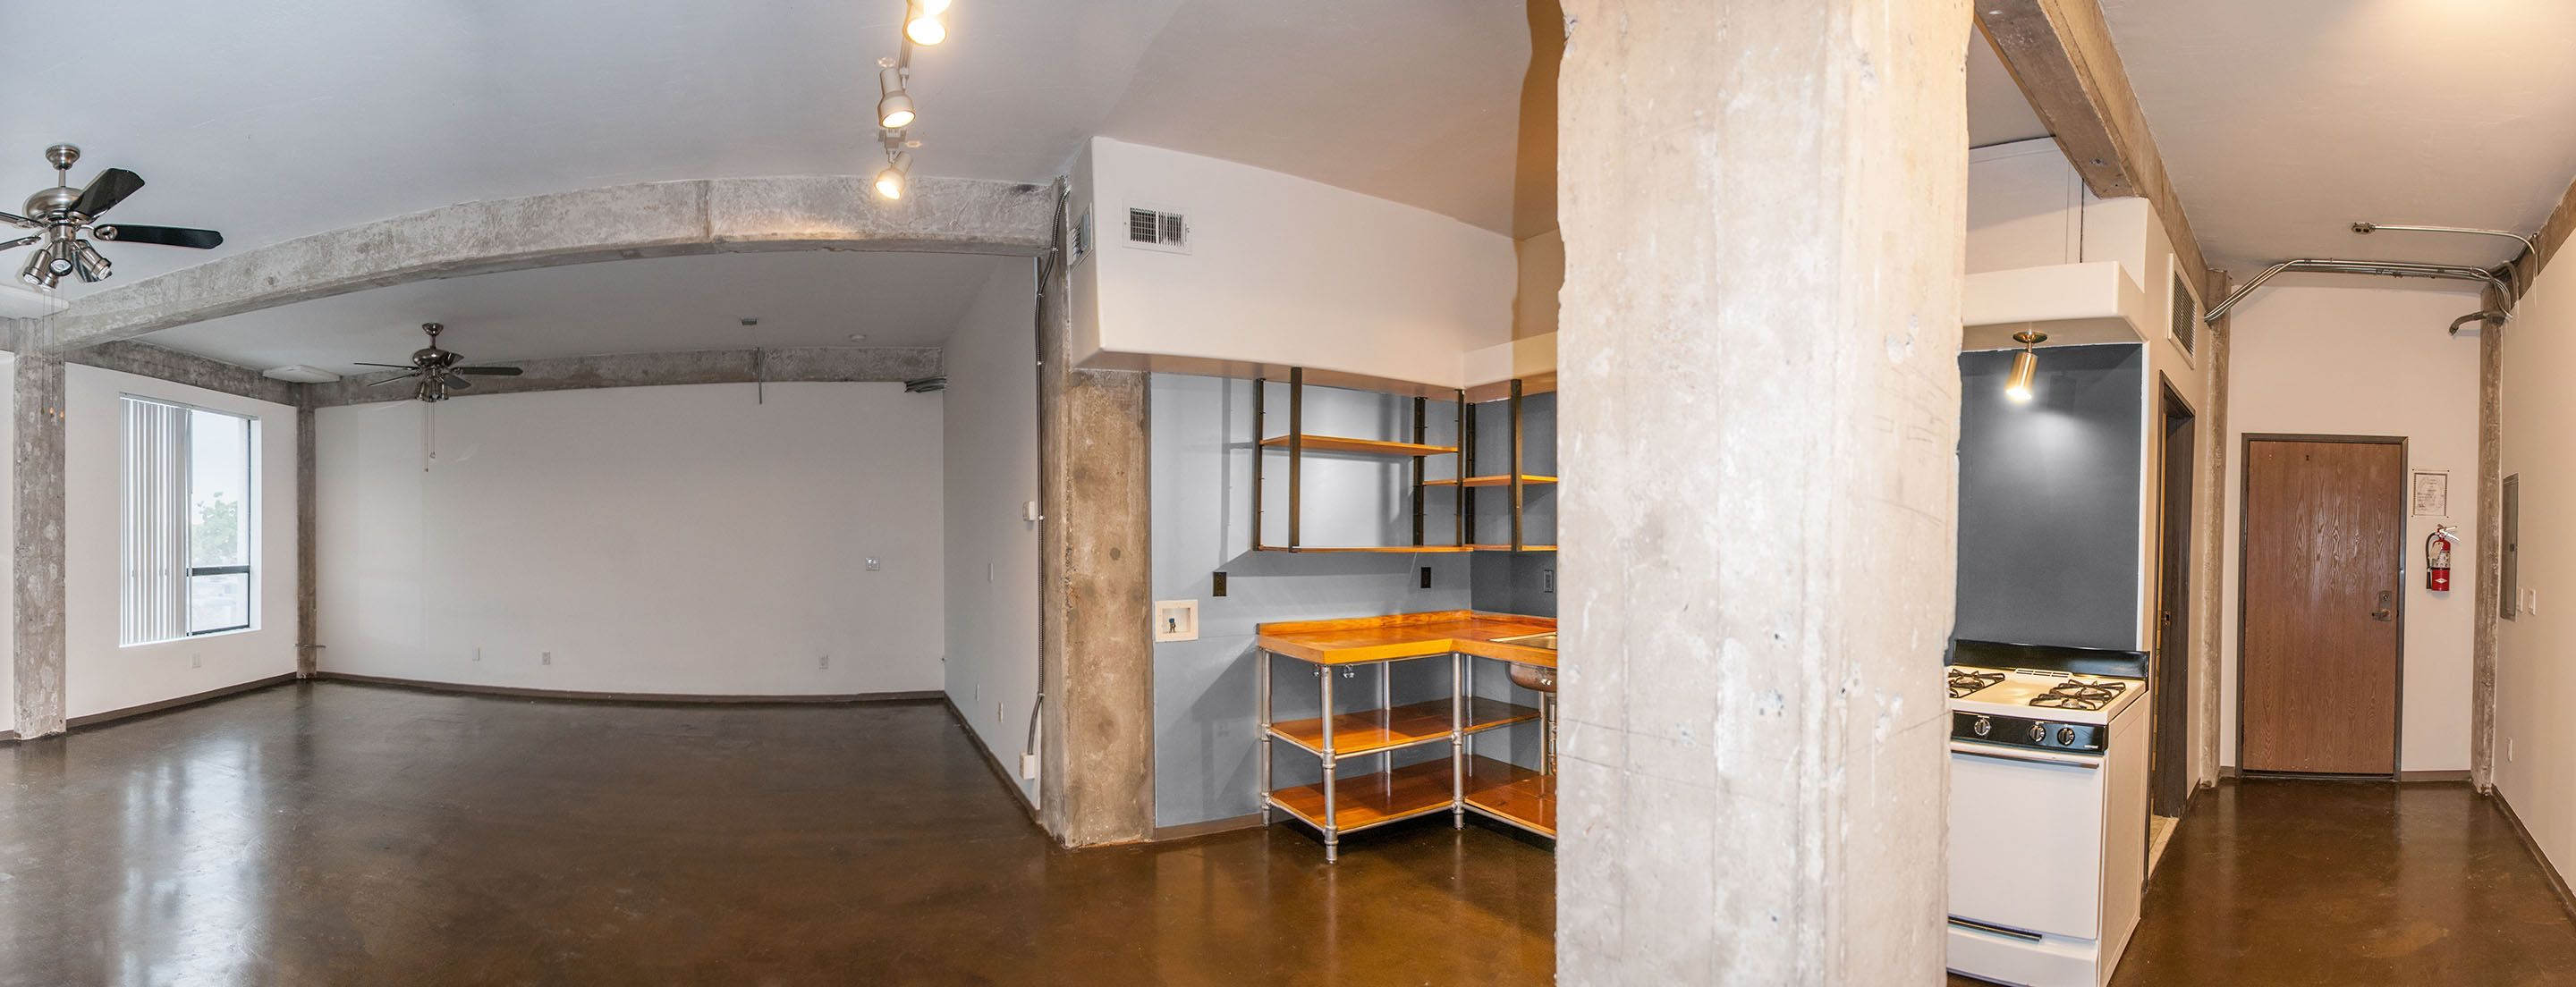 Loft for Rent; live work, downtown, pomona, inland empire